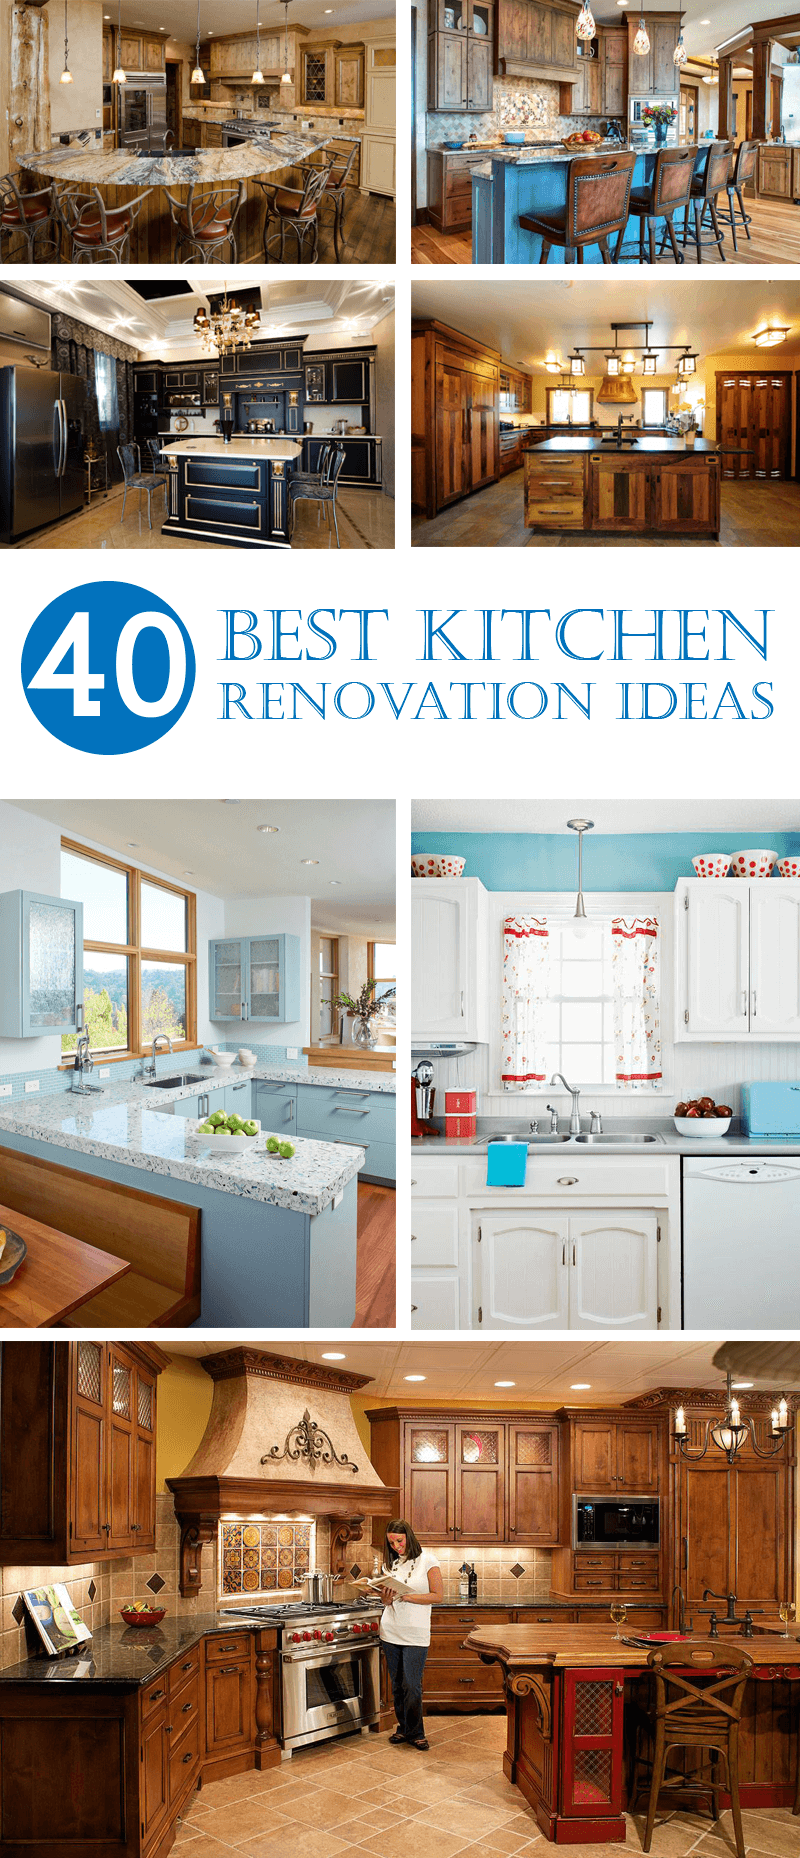 40 Impressive Kitchen Renovation Ideas and Designs - InteriorSherpa